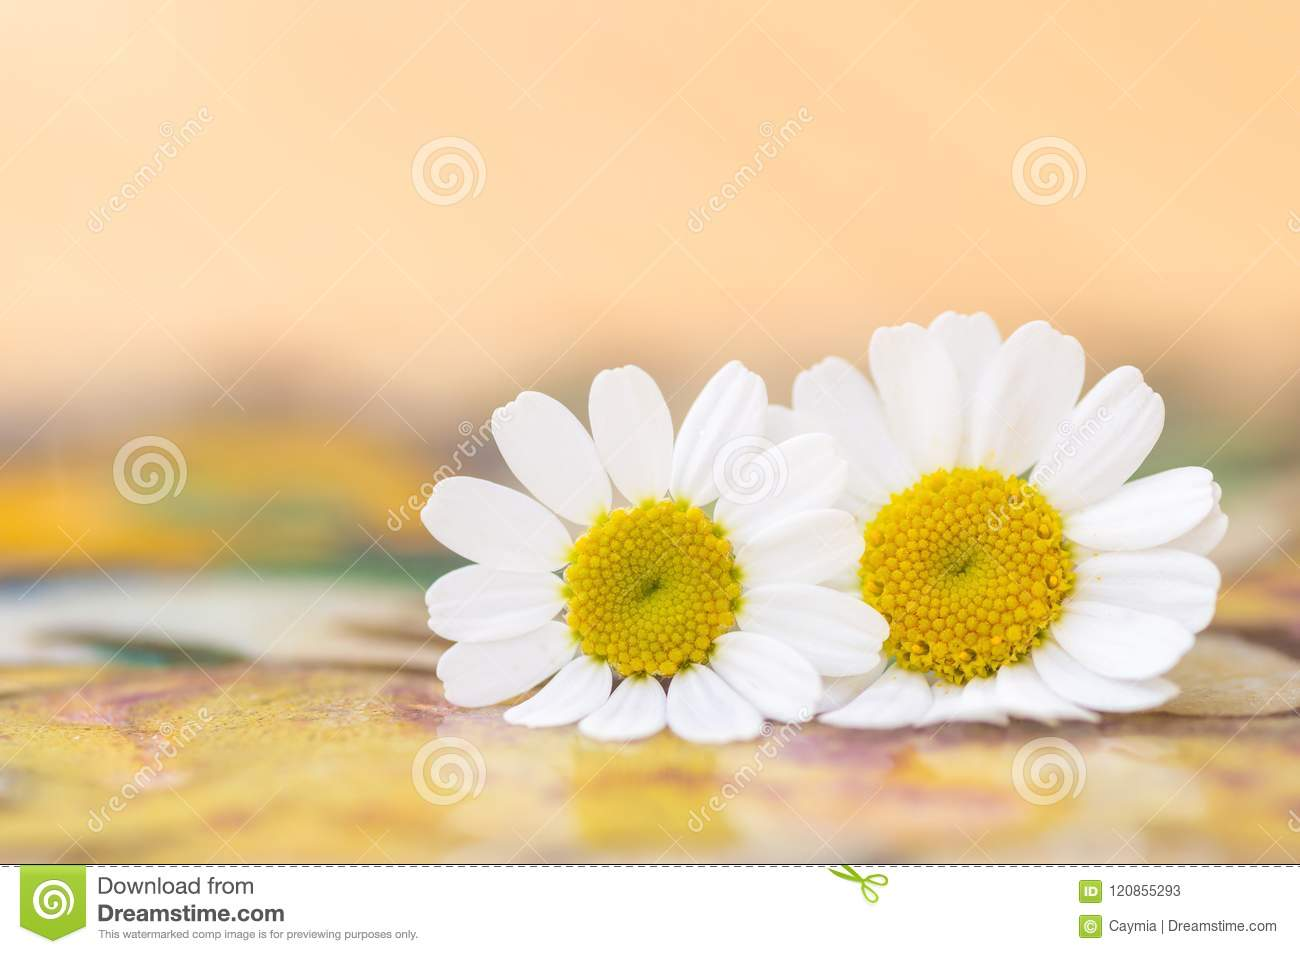 Feverfew flowers daisy flowers with peach and yellow background feverfew flowers daisy flowers with peach and yellow background izmirmasajfo